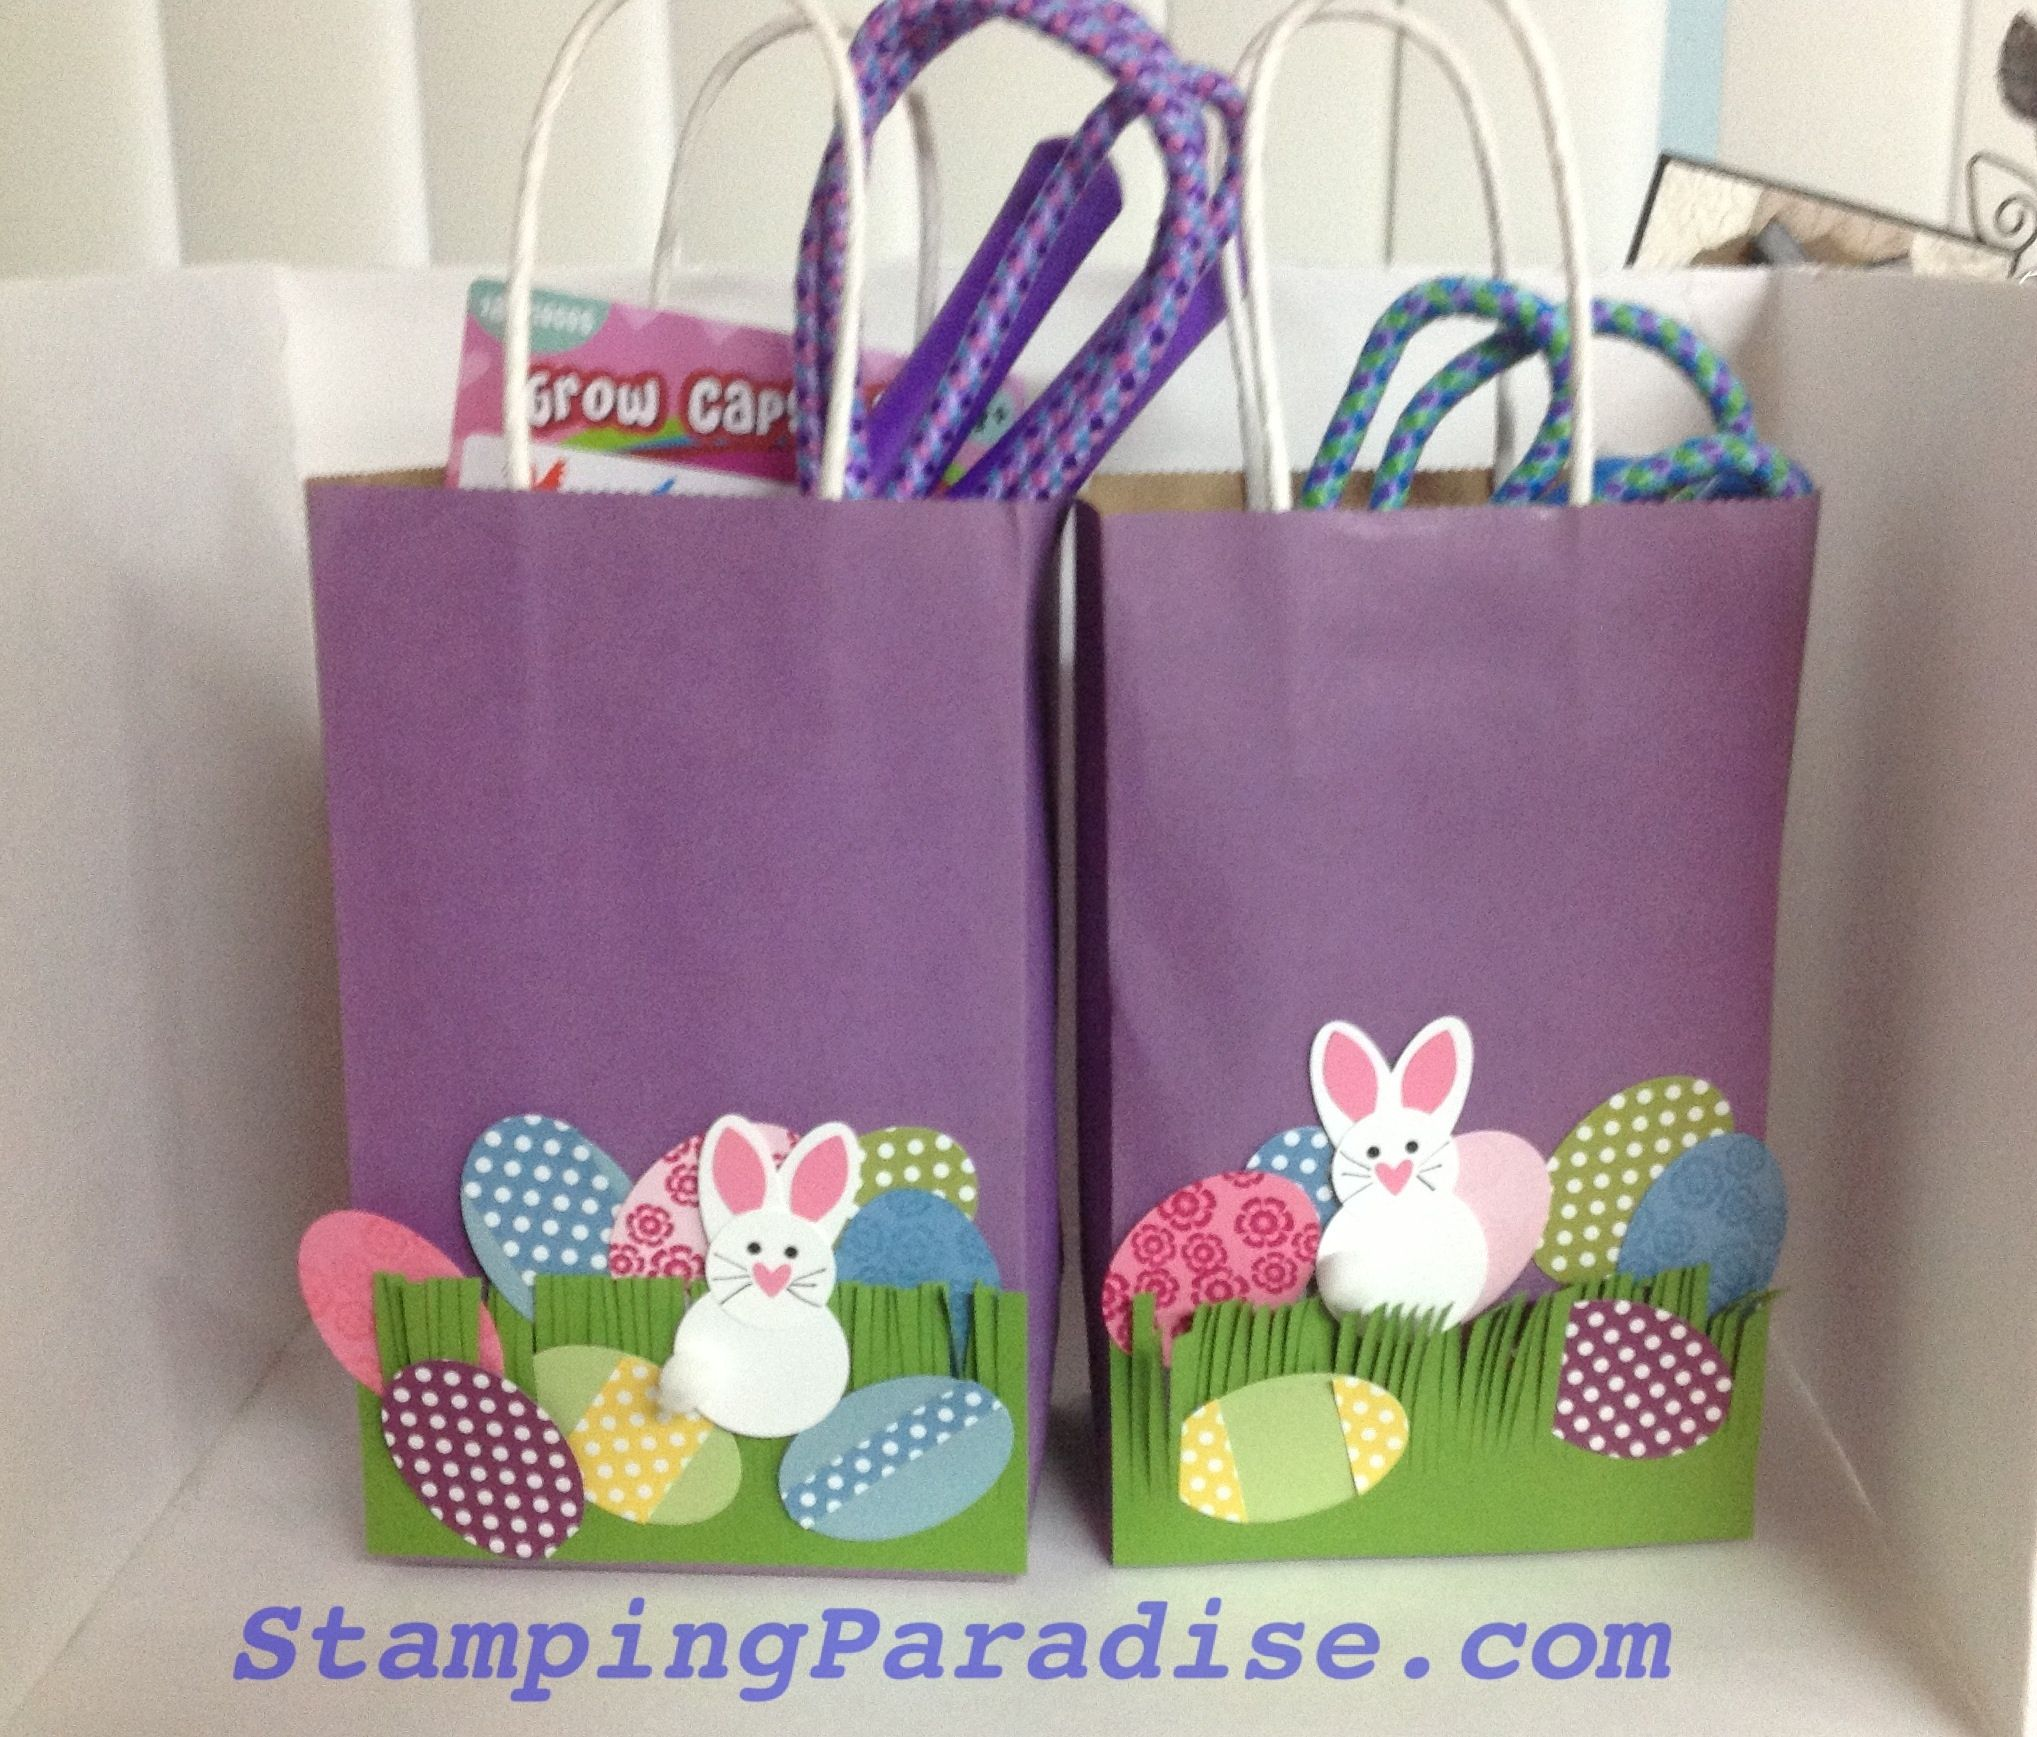 Easter bunny gift bags stamping paradise kids craft pinterest easter bunny gift bags stamping paradise negle Gallery